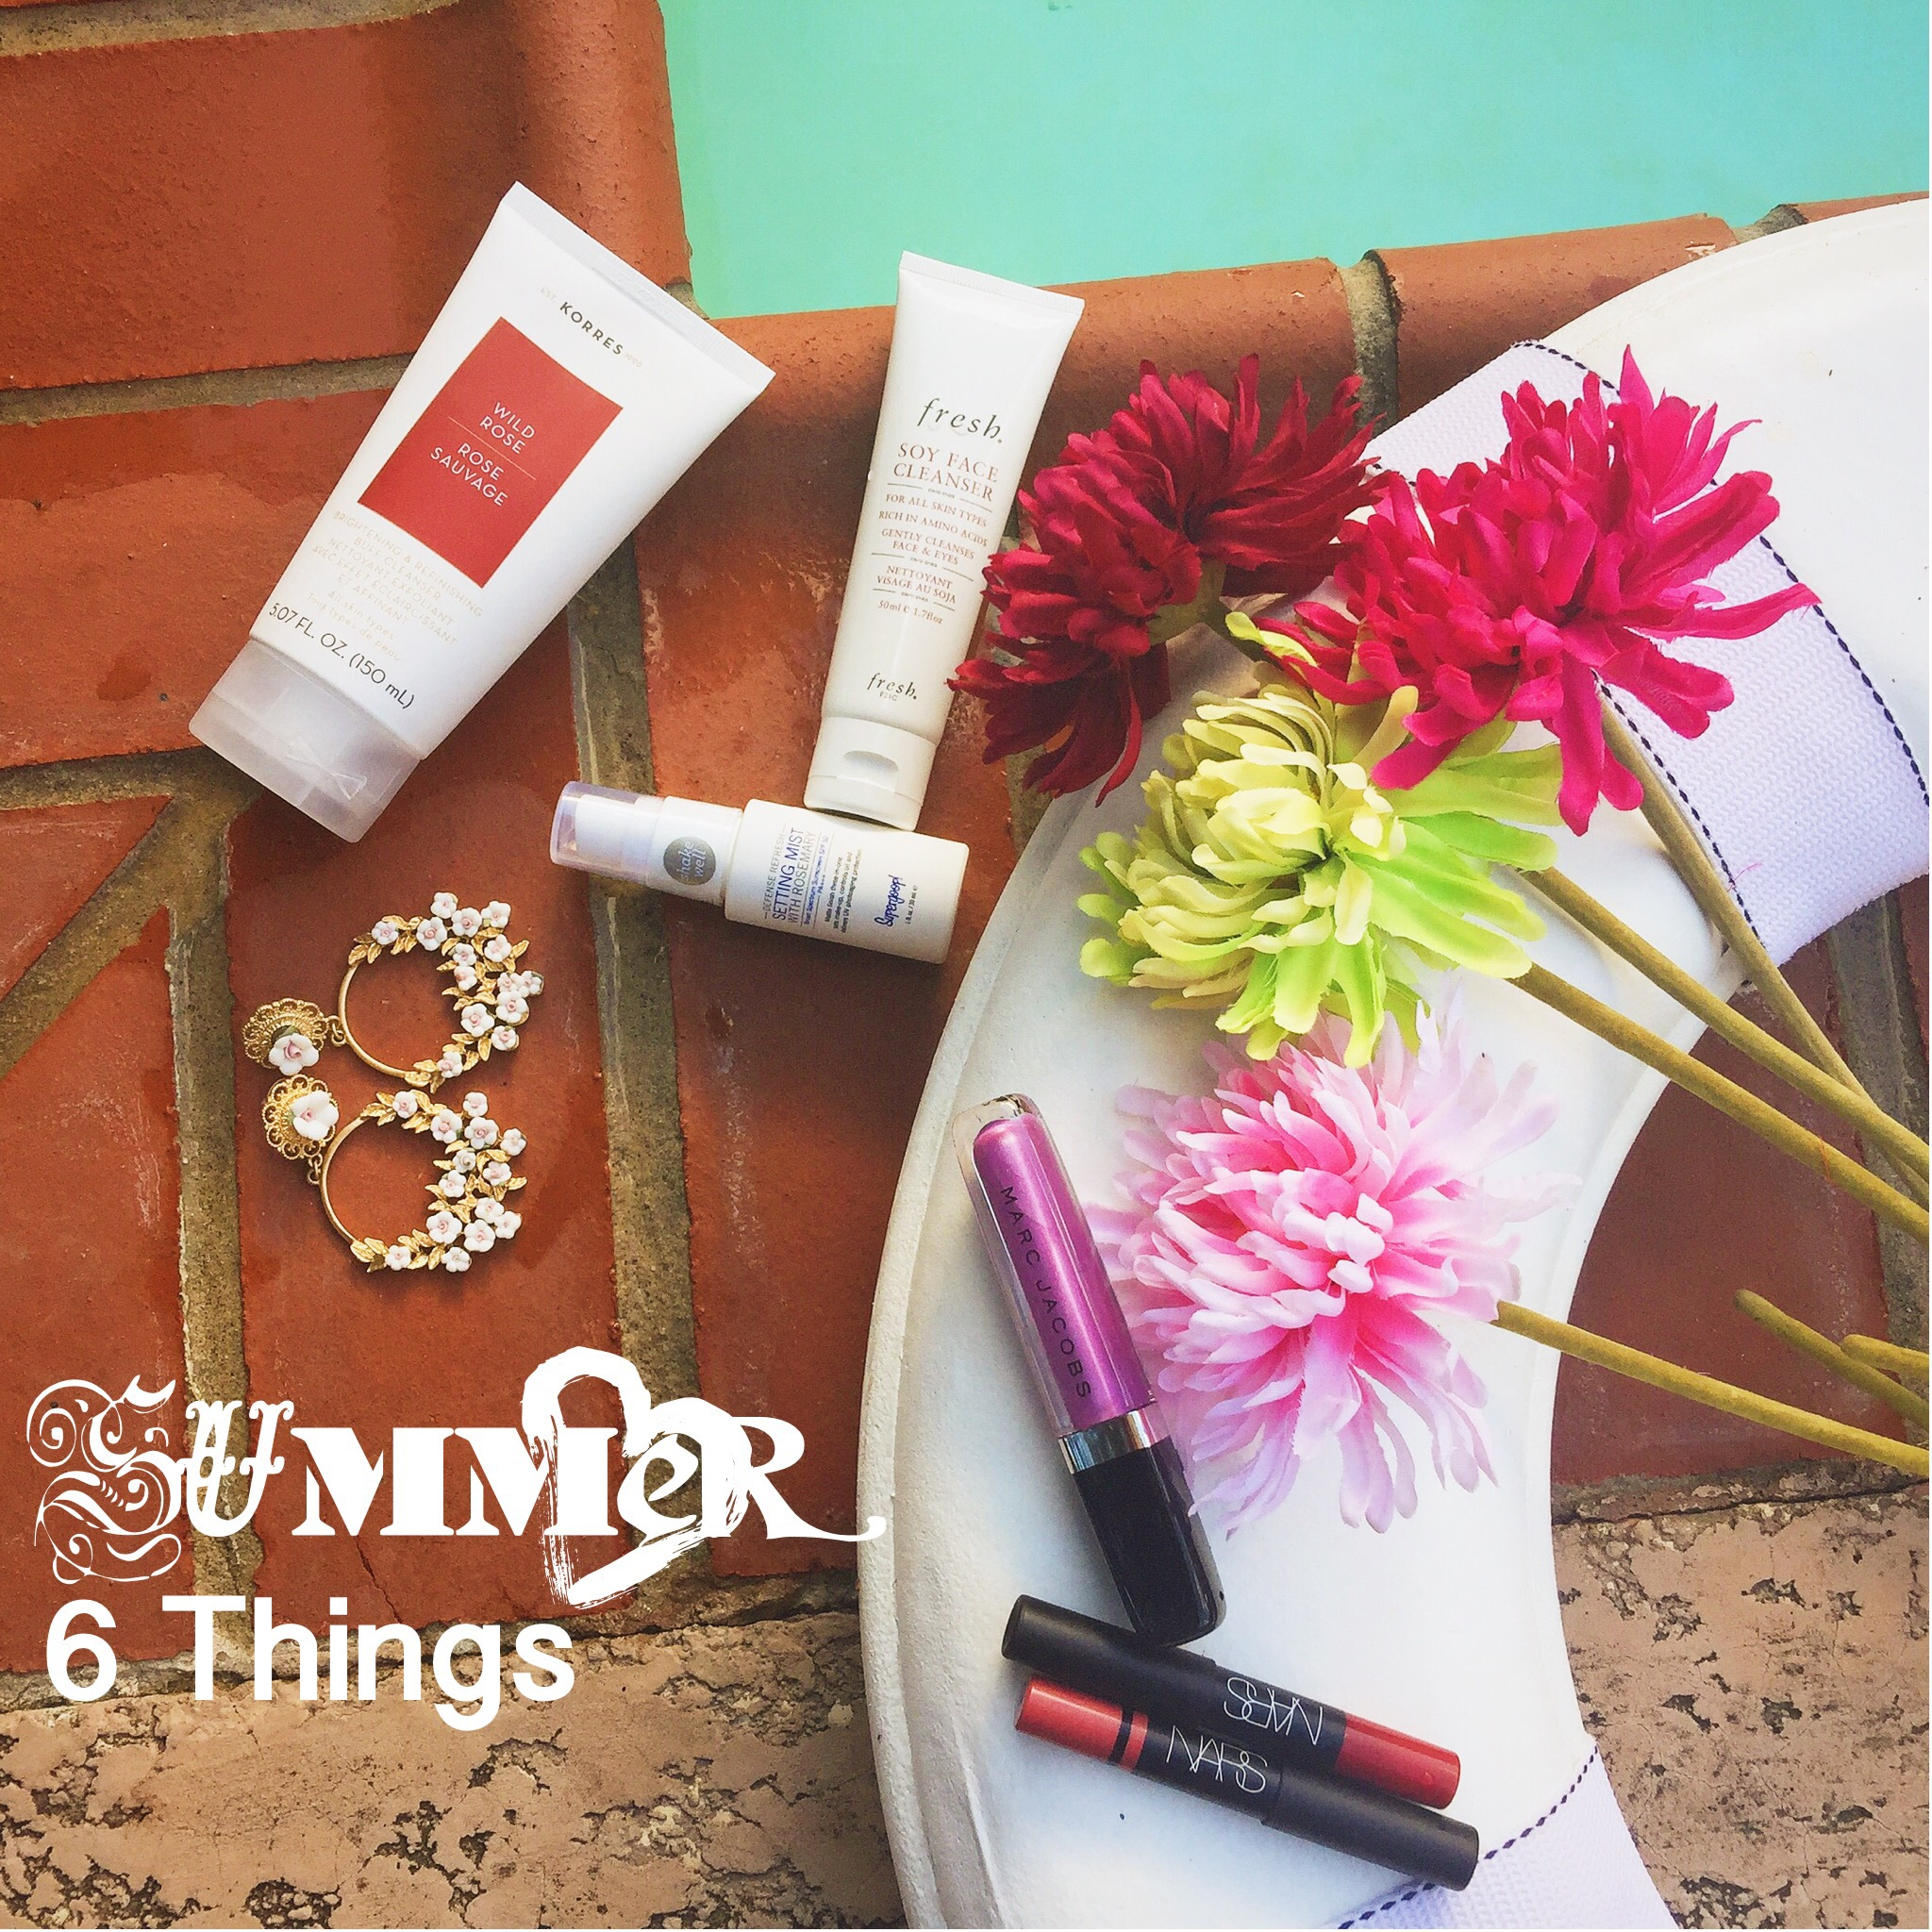 Beauty products and tips for spring and summer featuring korres rose cleanser, fresh soy cleanser, aldo flower earrings, supergoop spf setting mist, nars red lipstick cruella, marc jacobs beauty lip gloss